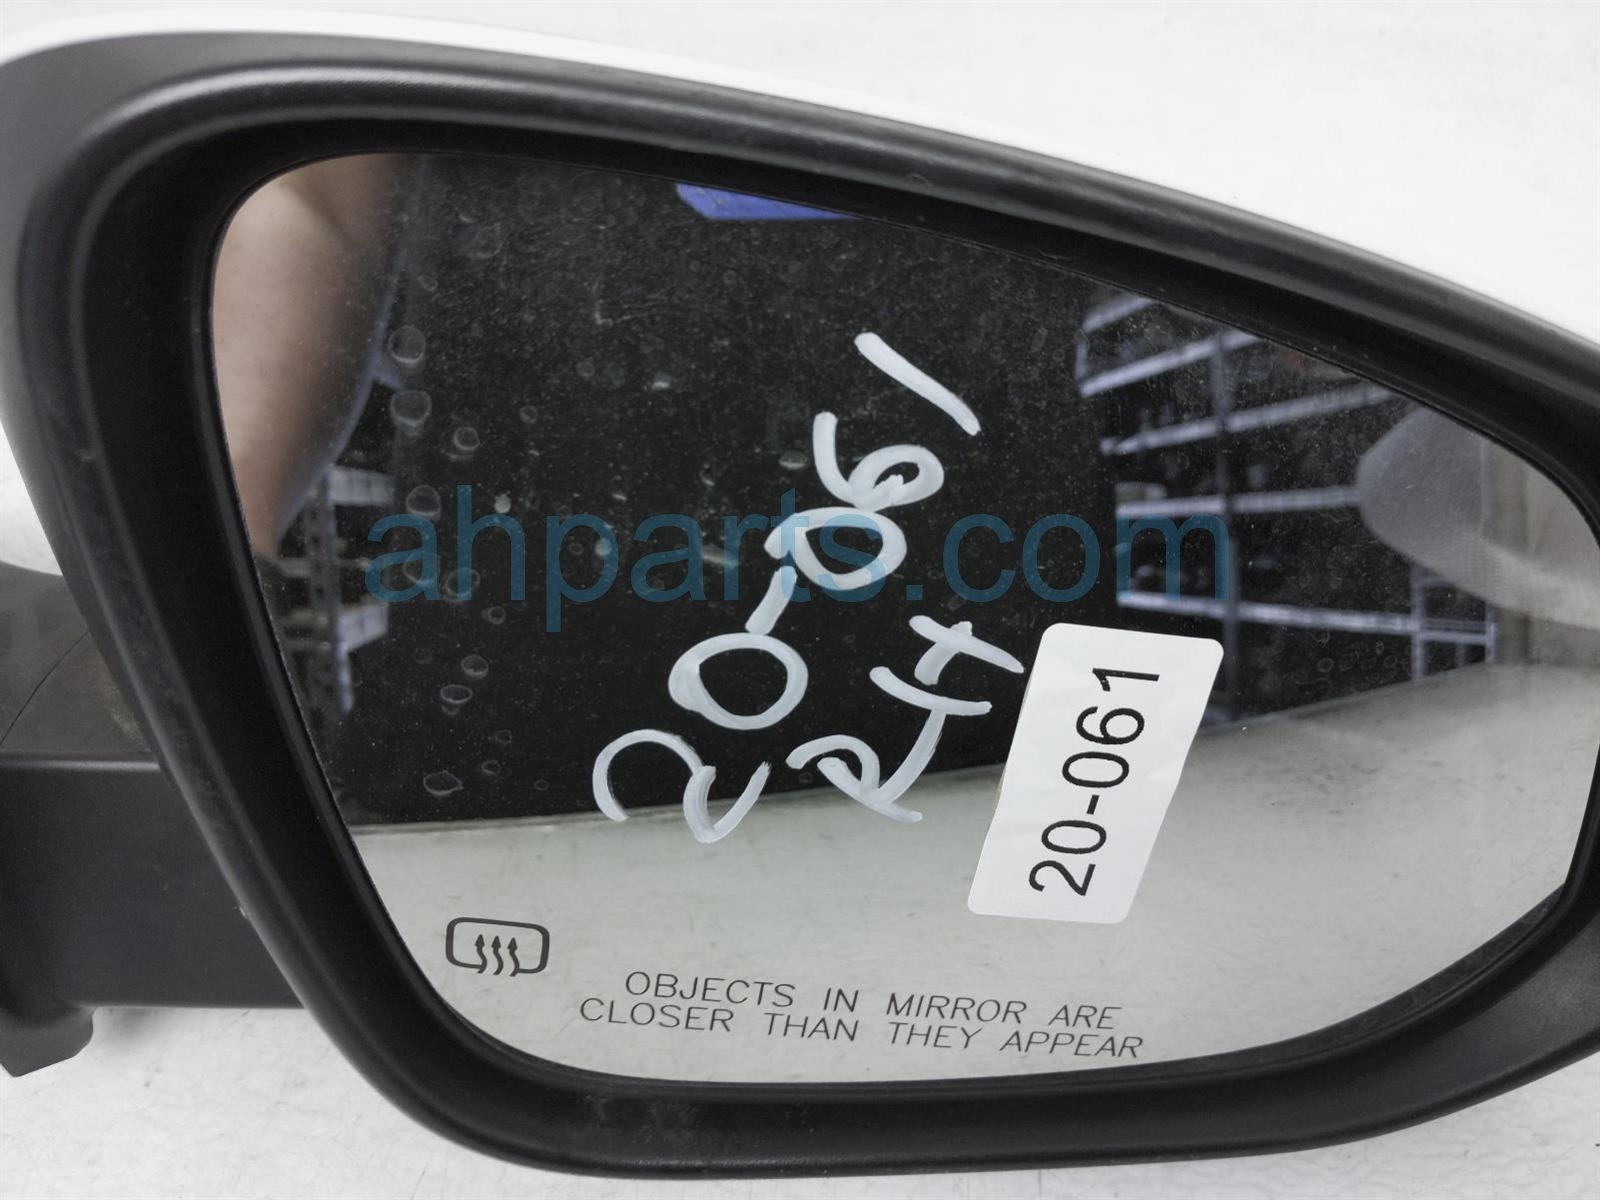 2014 Toyota Highlander Rear Passenger Side View Mirror   White 87910 0E143 Replacement